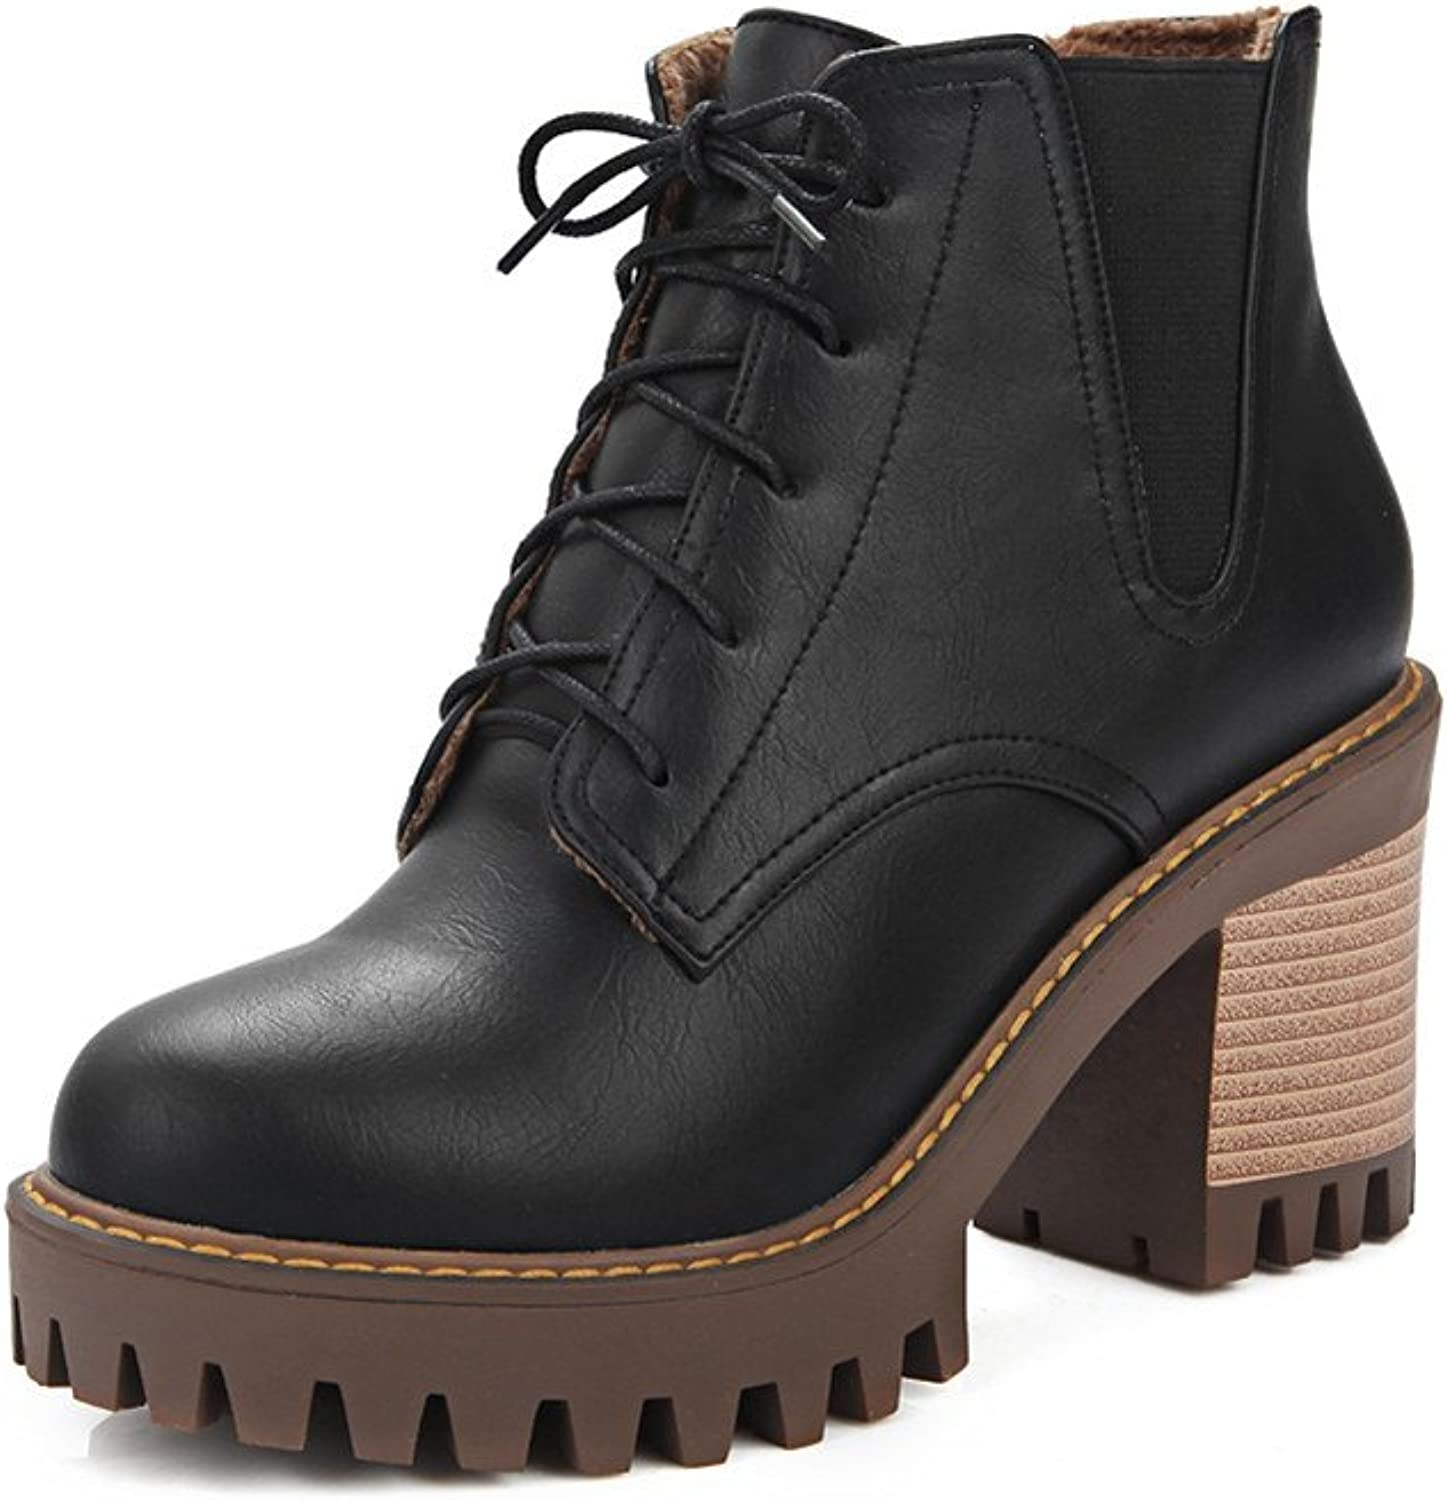 Lucksender Womens Round Toe Lace Up Platform Chunky High Heel Short Boots